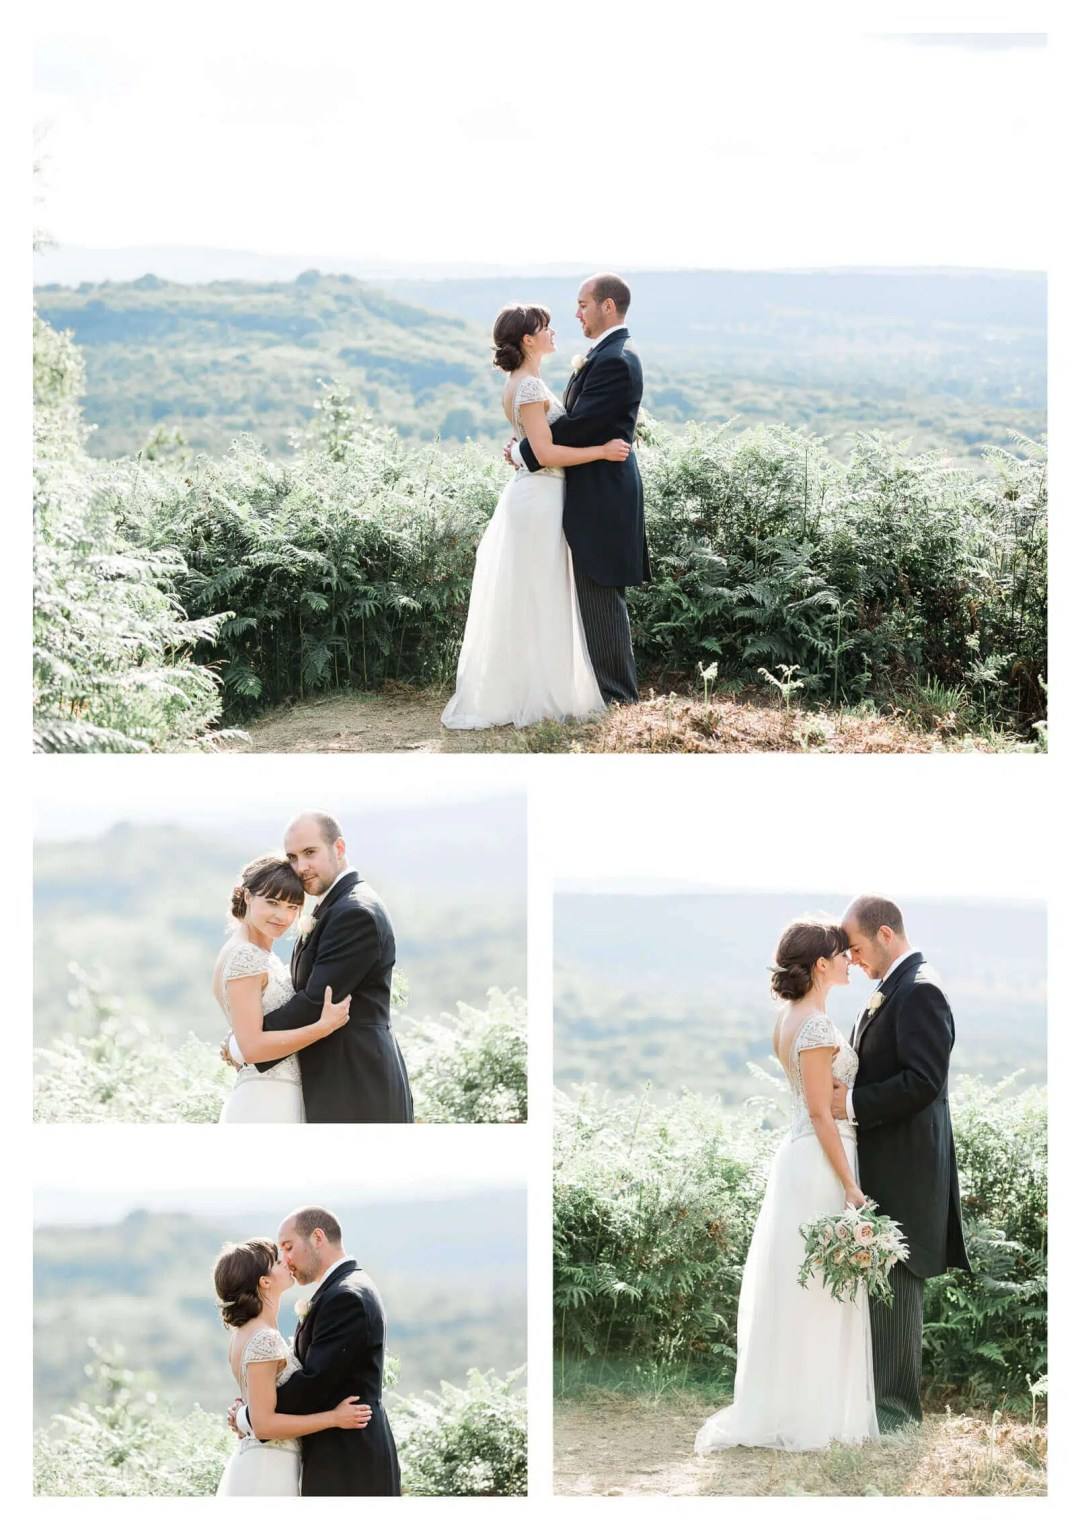 South Downs Stedham couple portraits in Chichester   West-Sussex wedding photographer